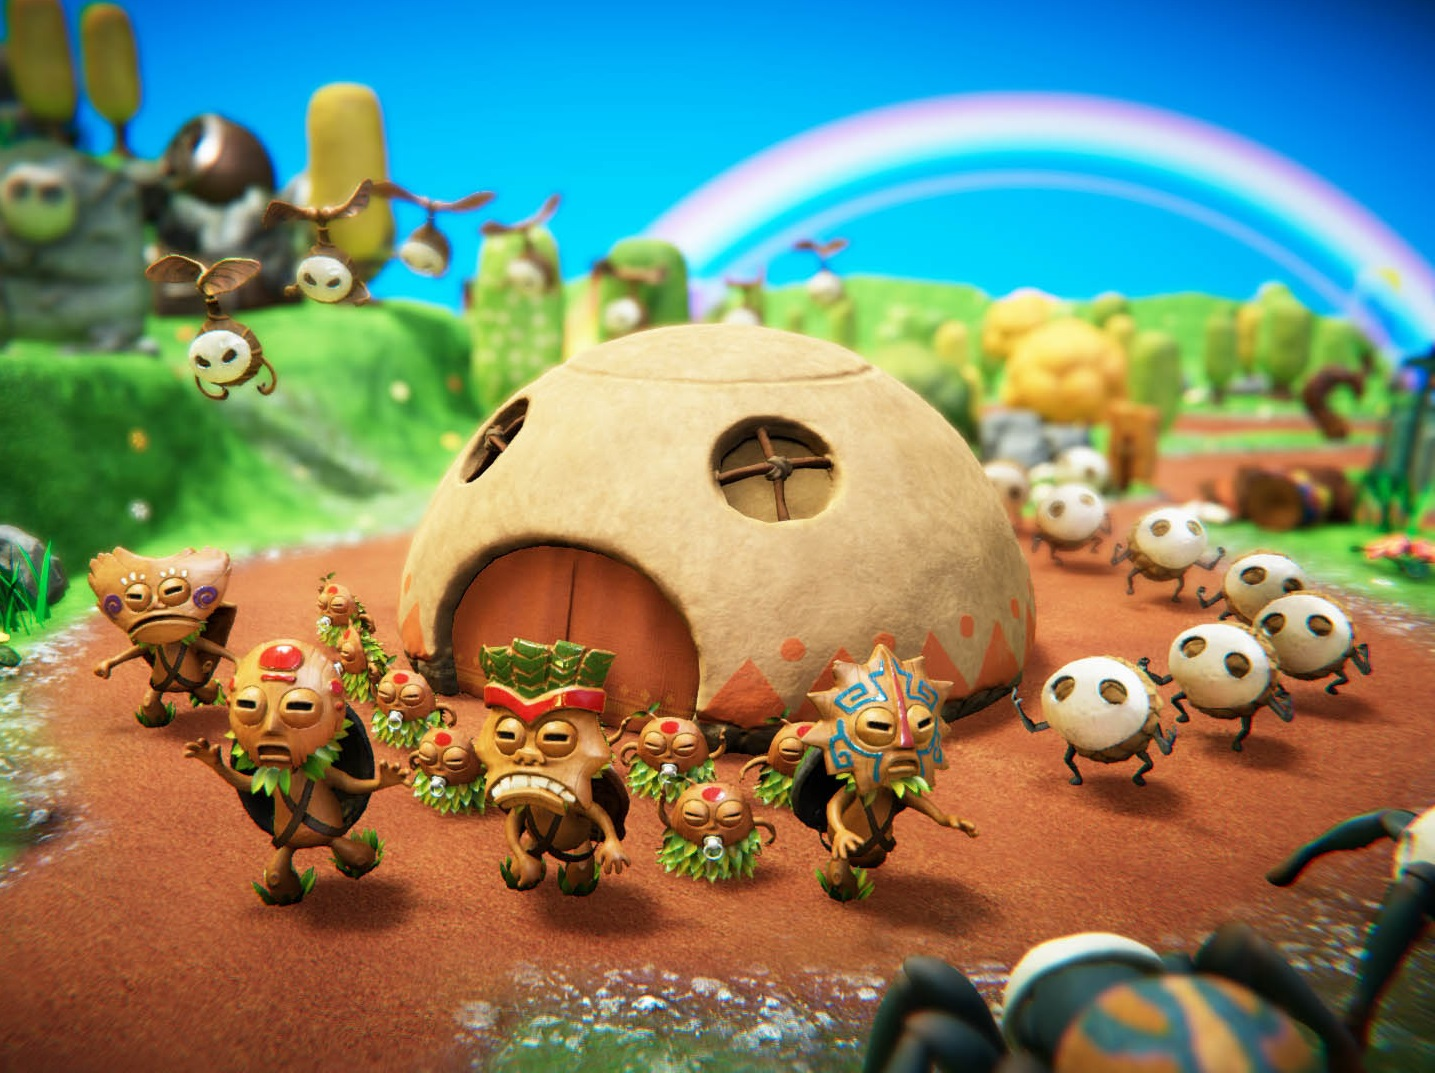 Review: PixelJunk Monsters 2 (Nintendo Switch) - Digitally Downloaded